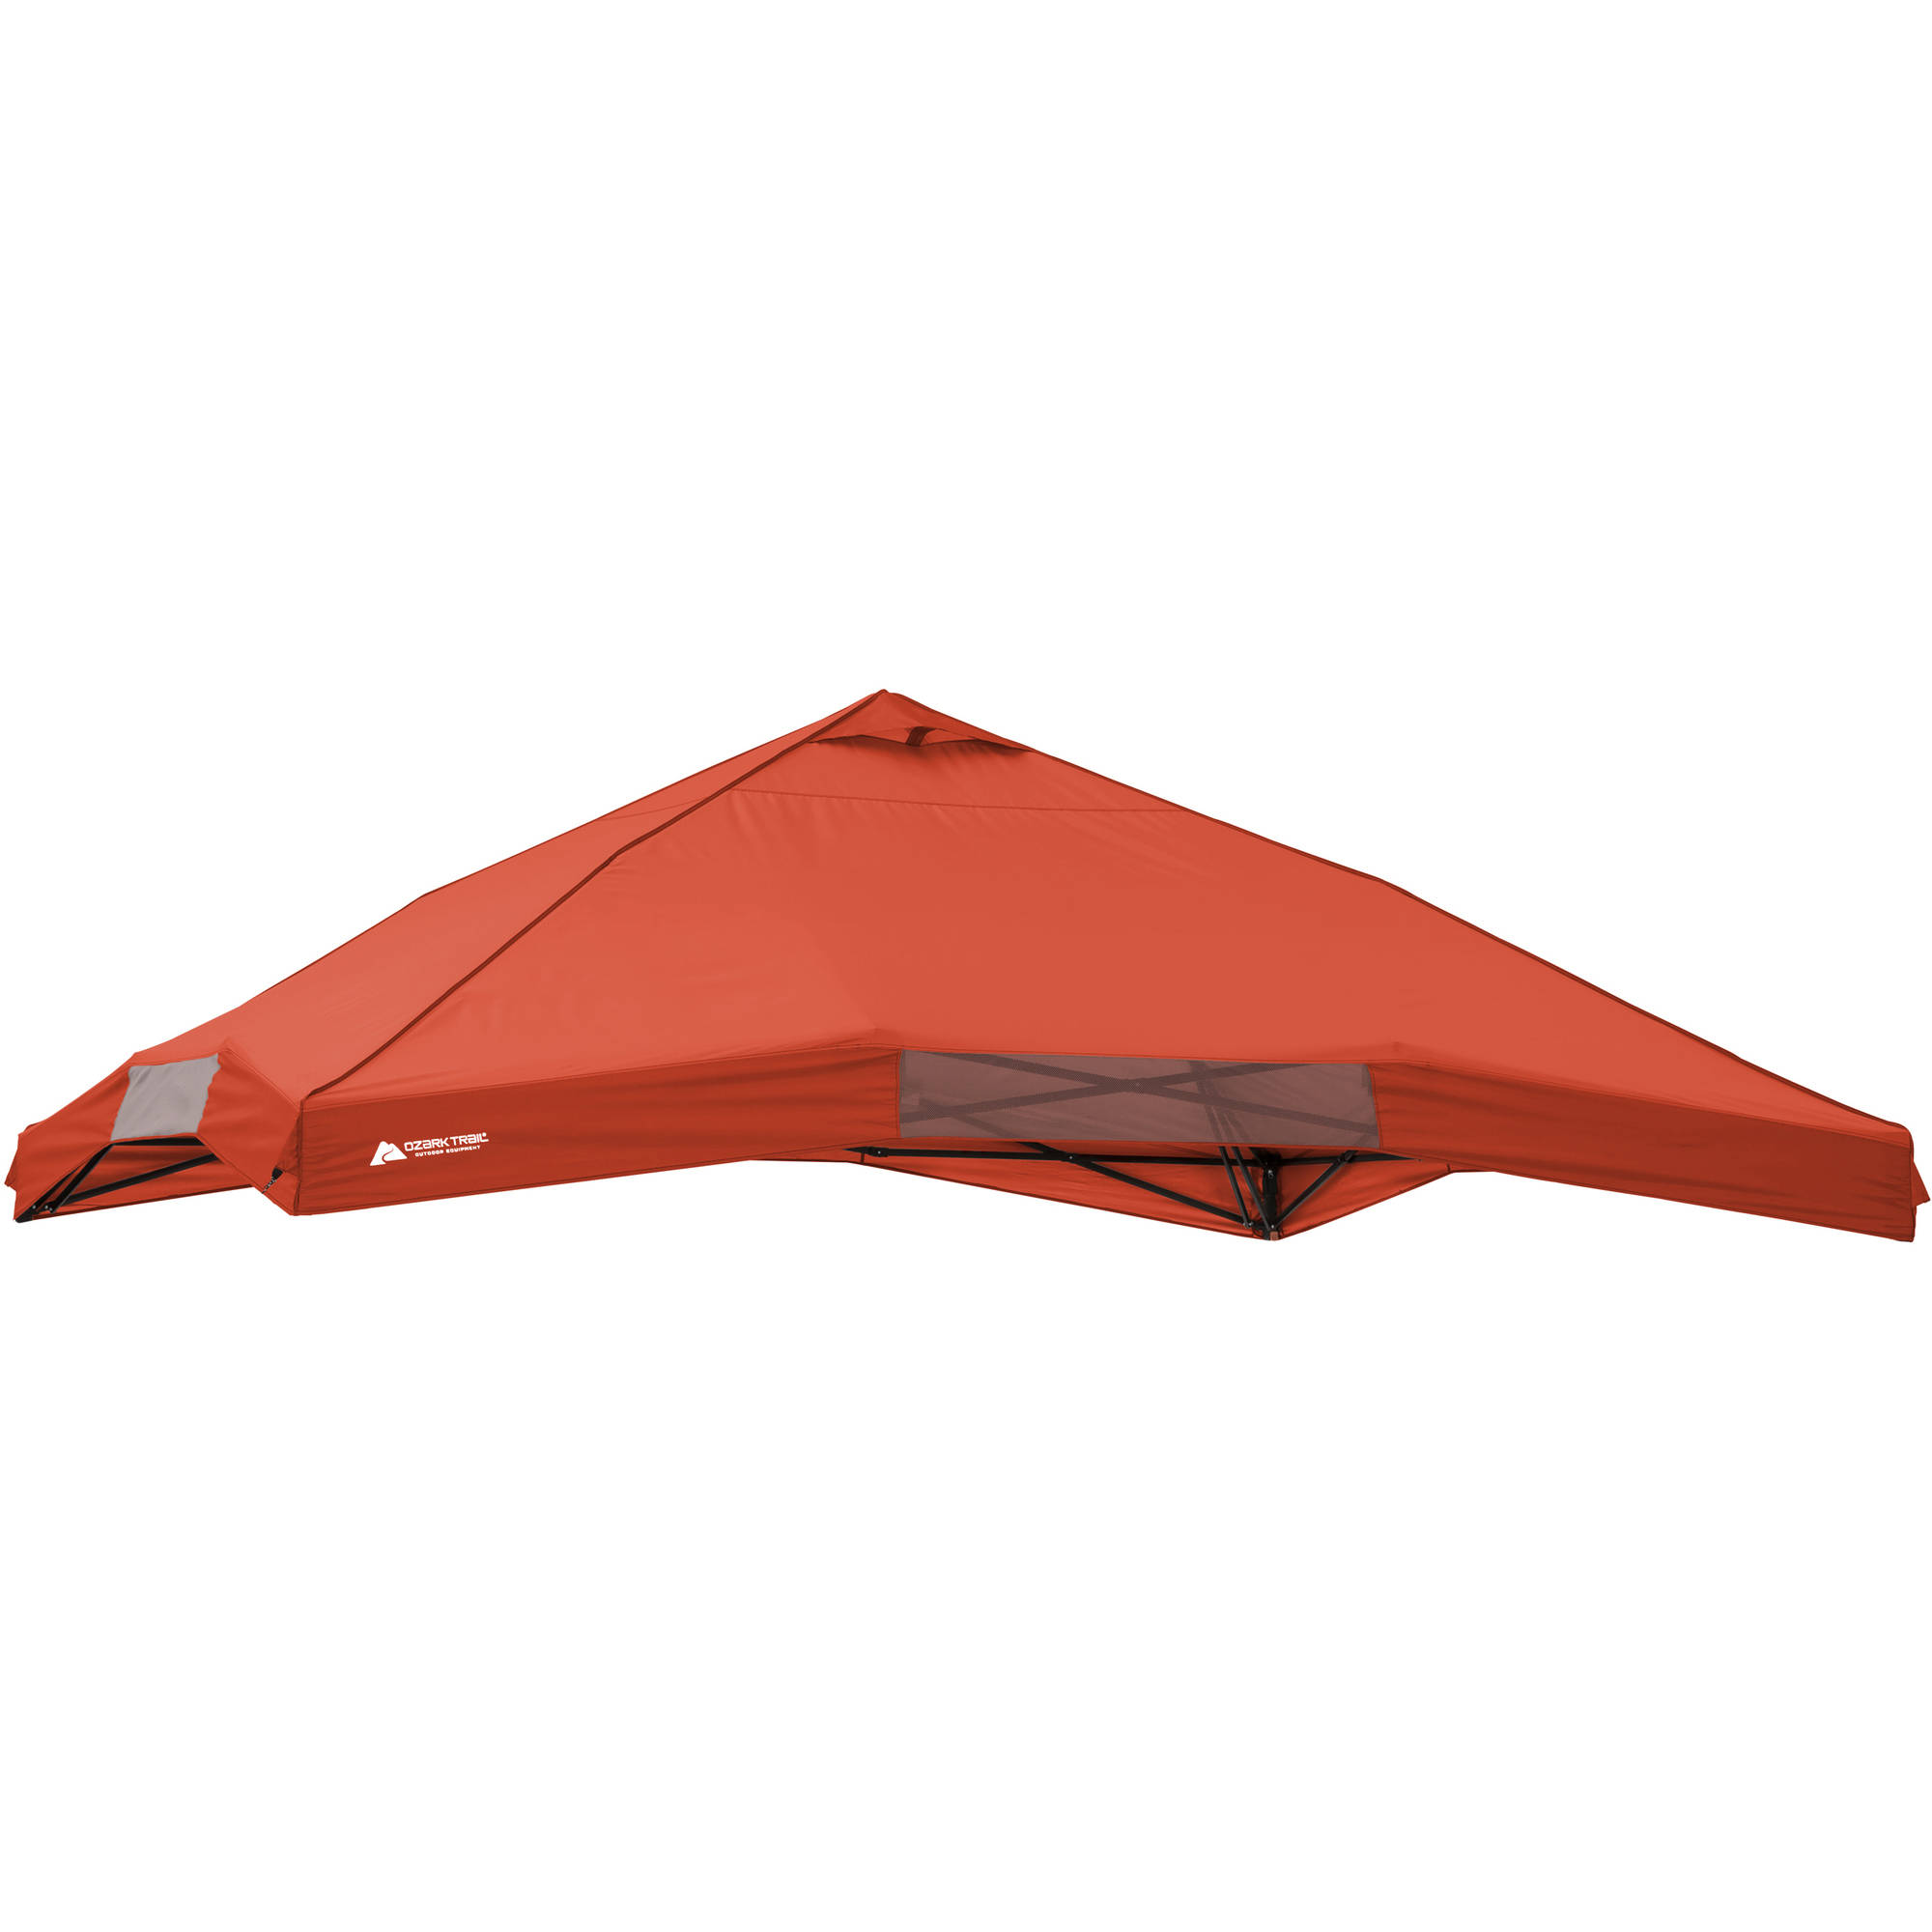 Ozark Trail Instant 12' x 12' Canopy Top, Red